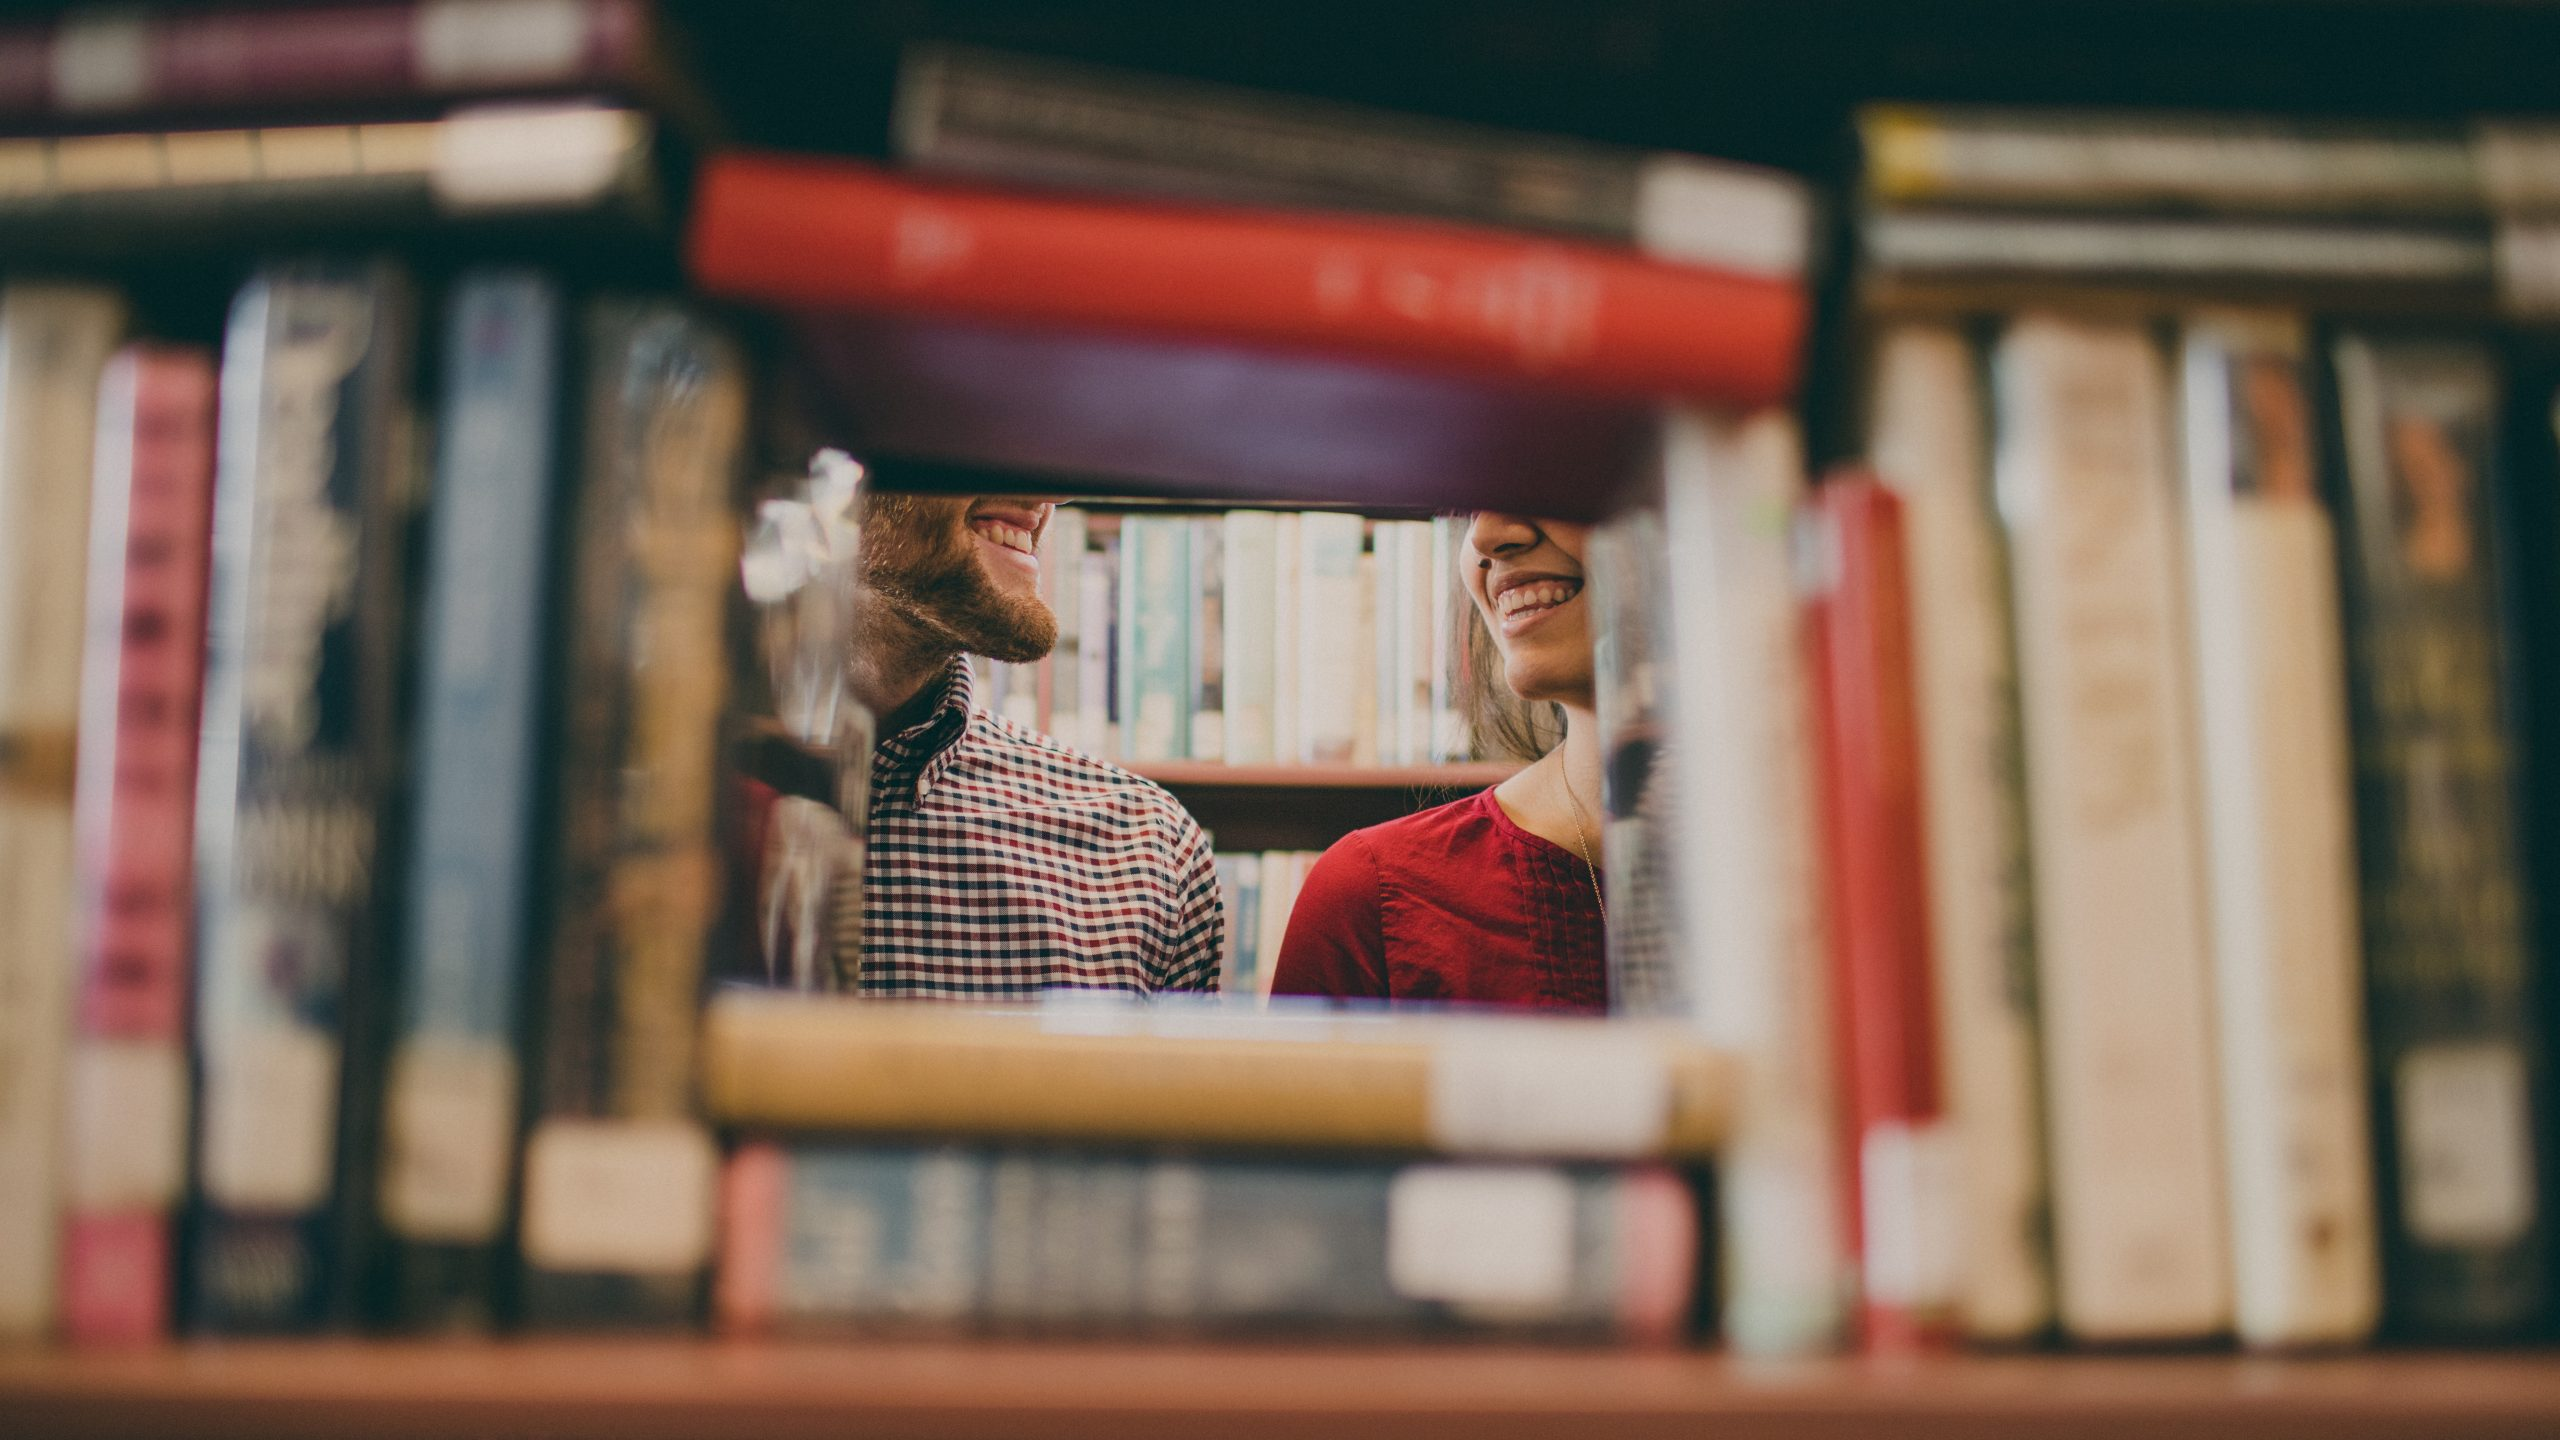 Photo of people in a bookshop.